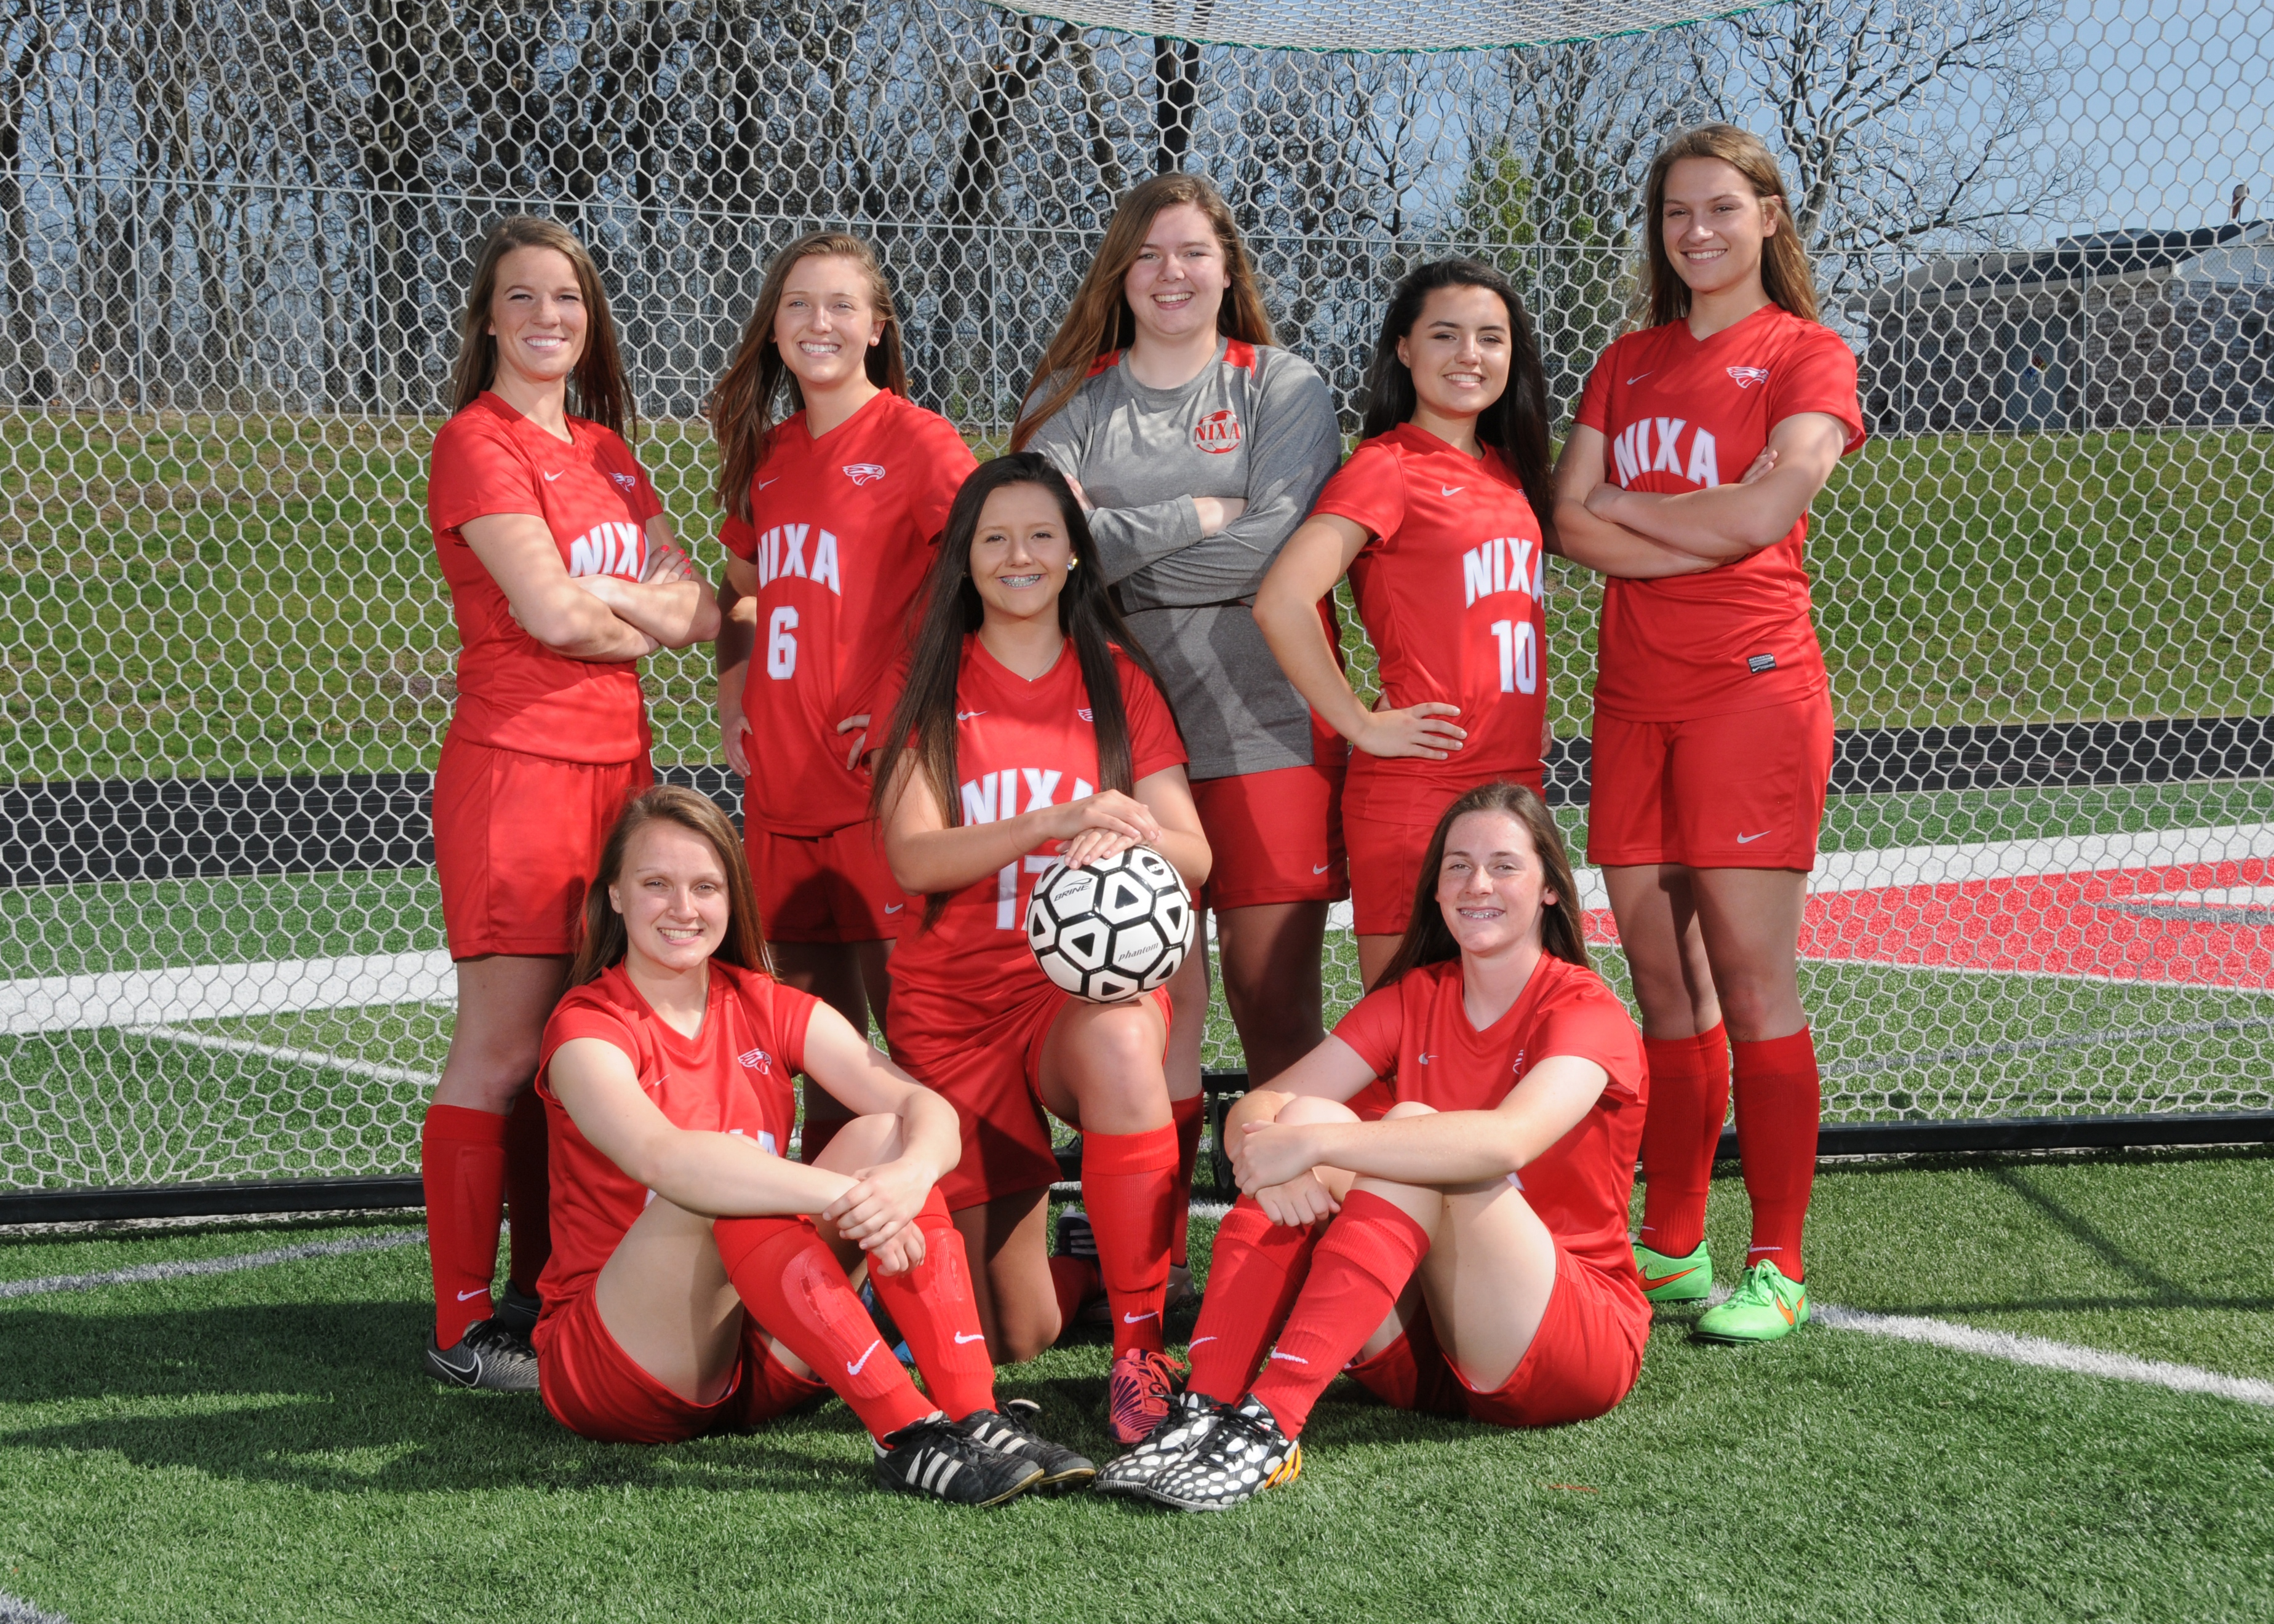 nixa girls The nixa lady eagles fell to glendale 2-1 in the class 3 district 11 title game may 16 nixa finished the season 19-2.